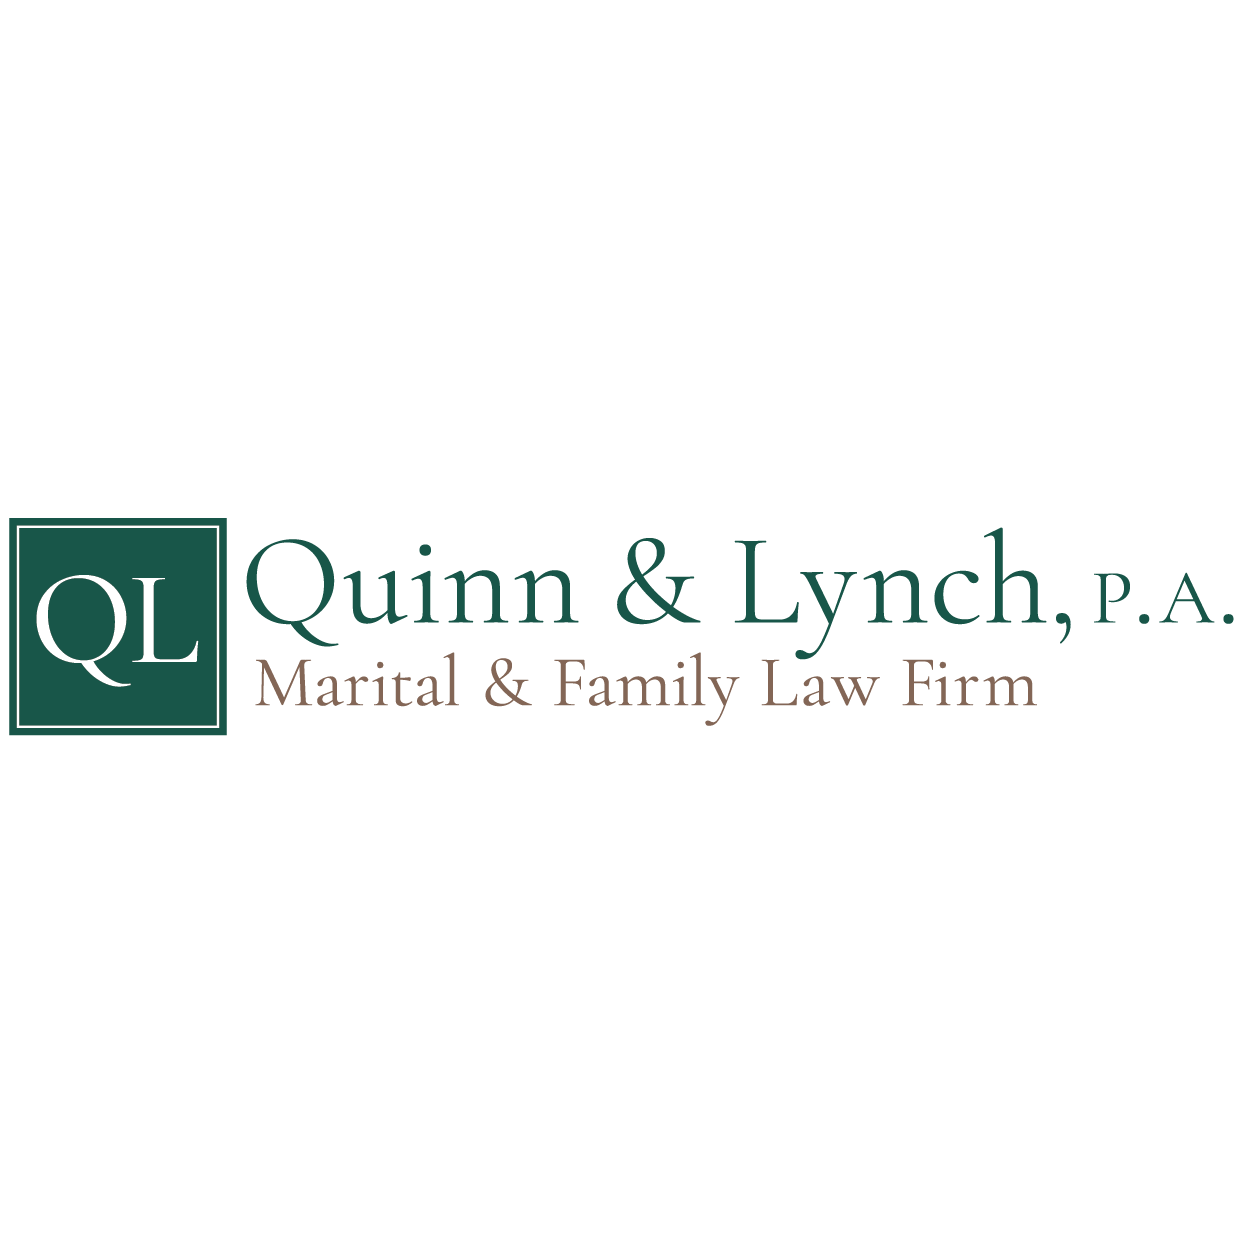 Quinn & Lynch, P.A. image 3